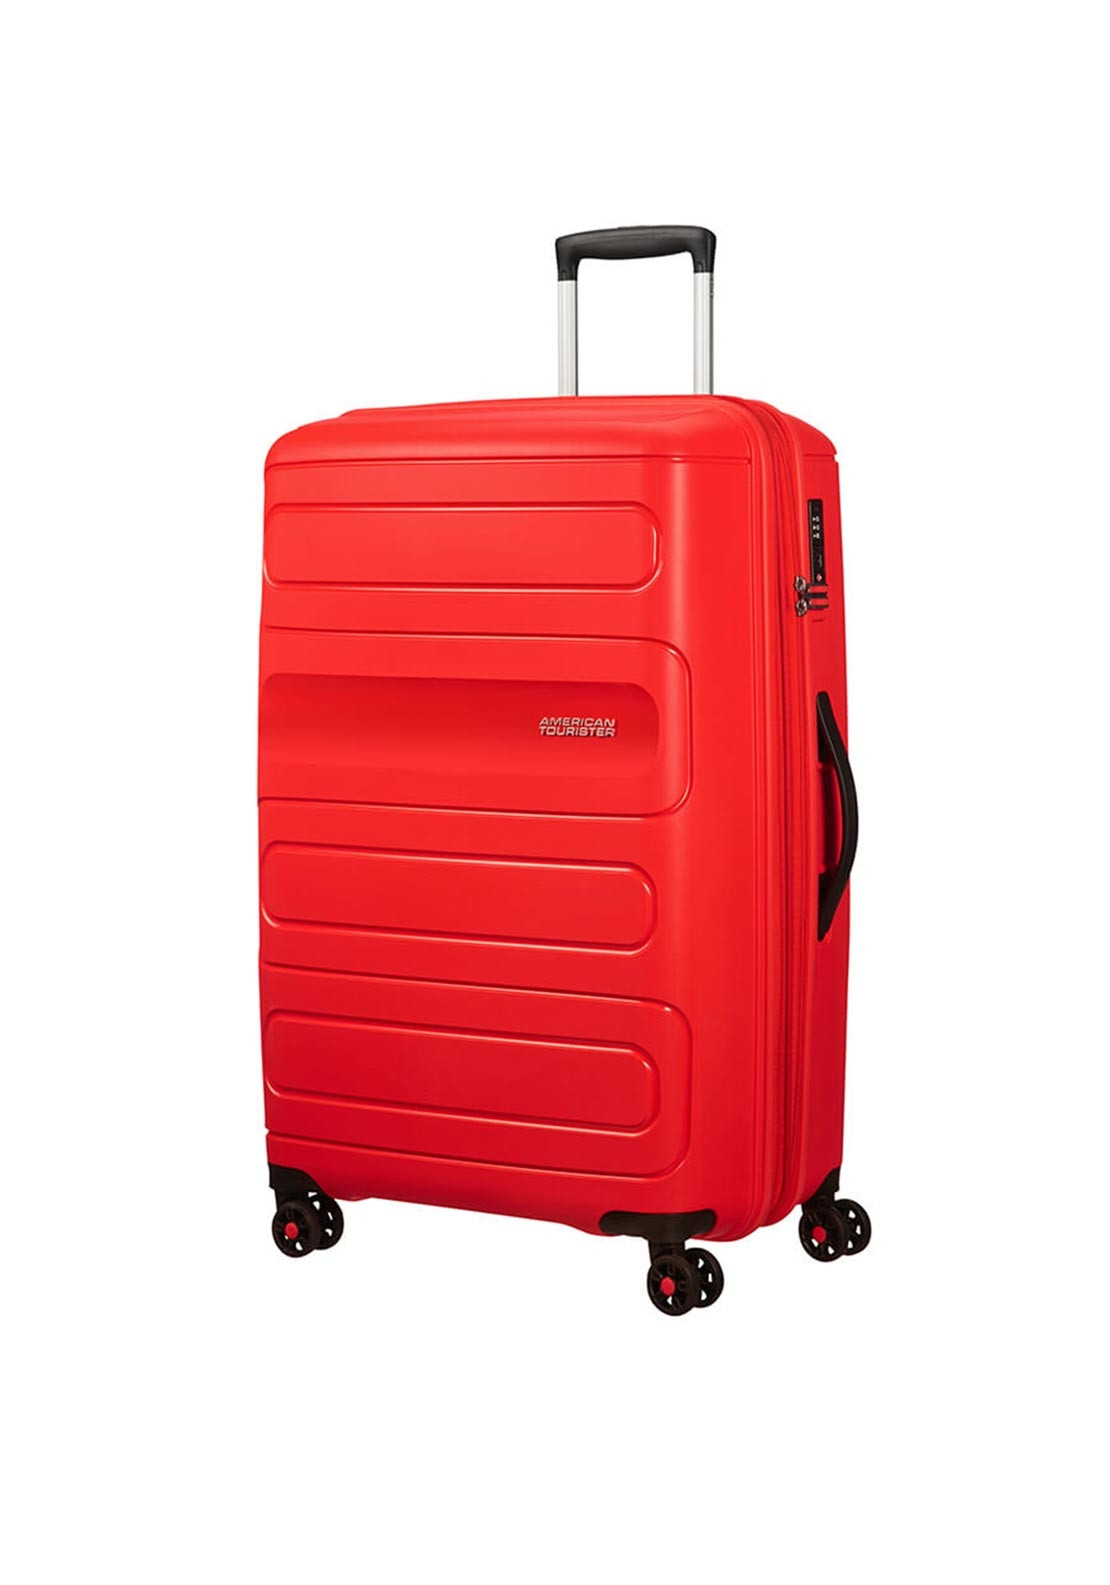 American Tourister Sunside Suitcase 77cm, Sunset Red